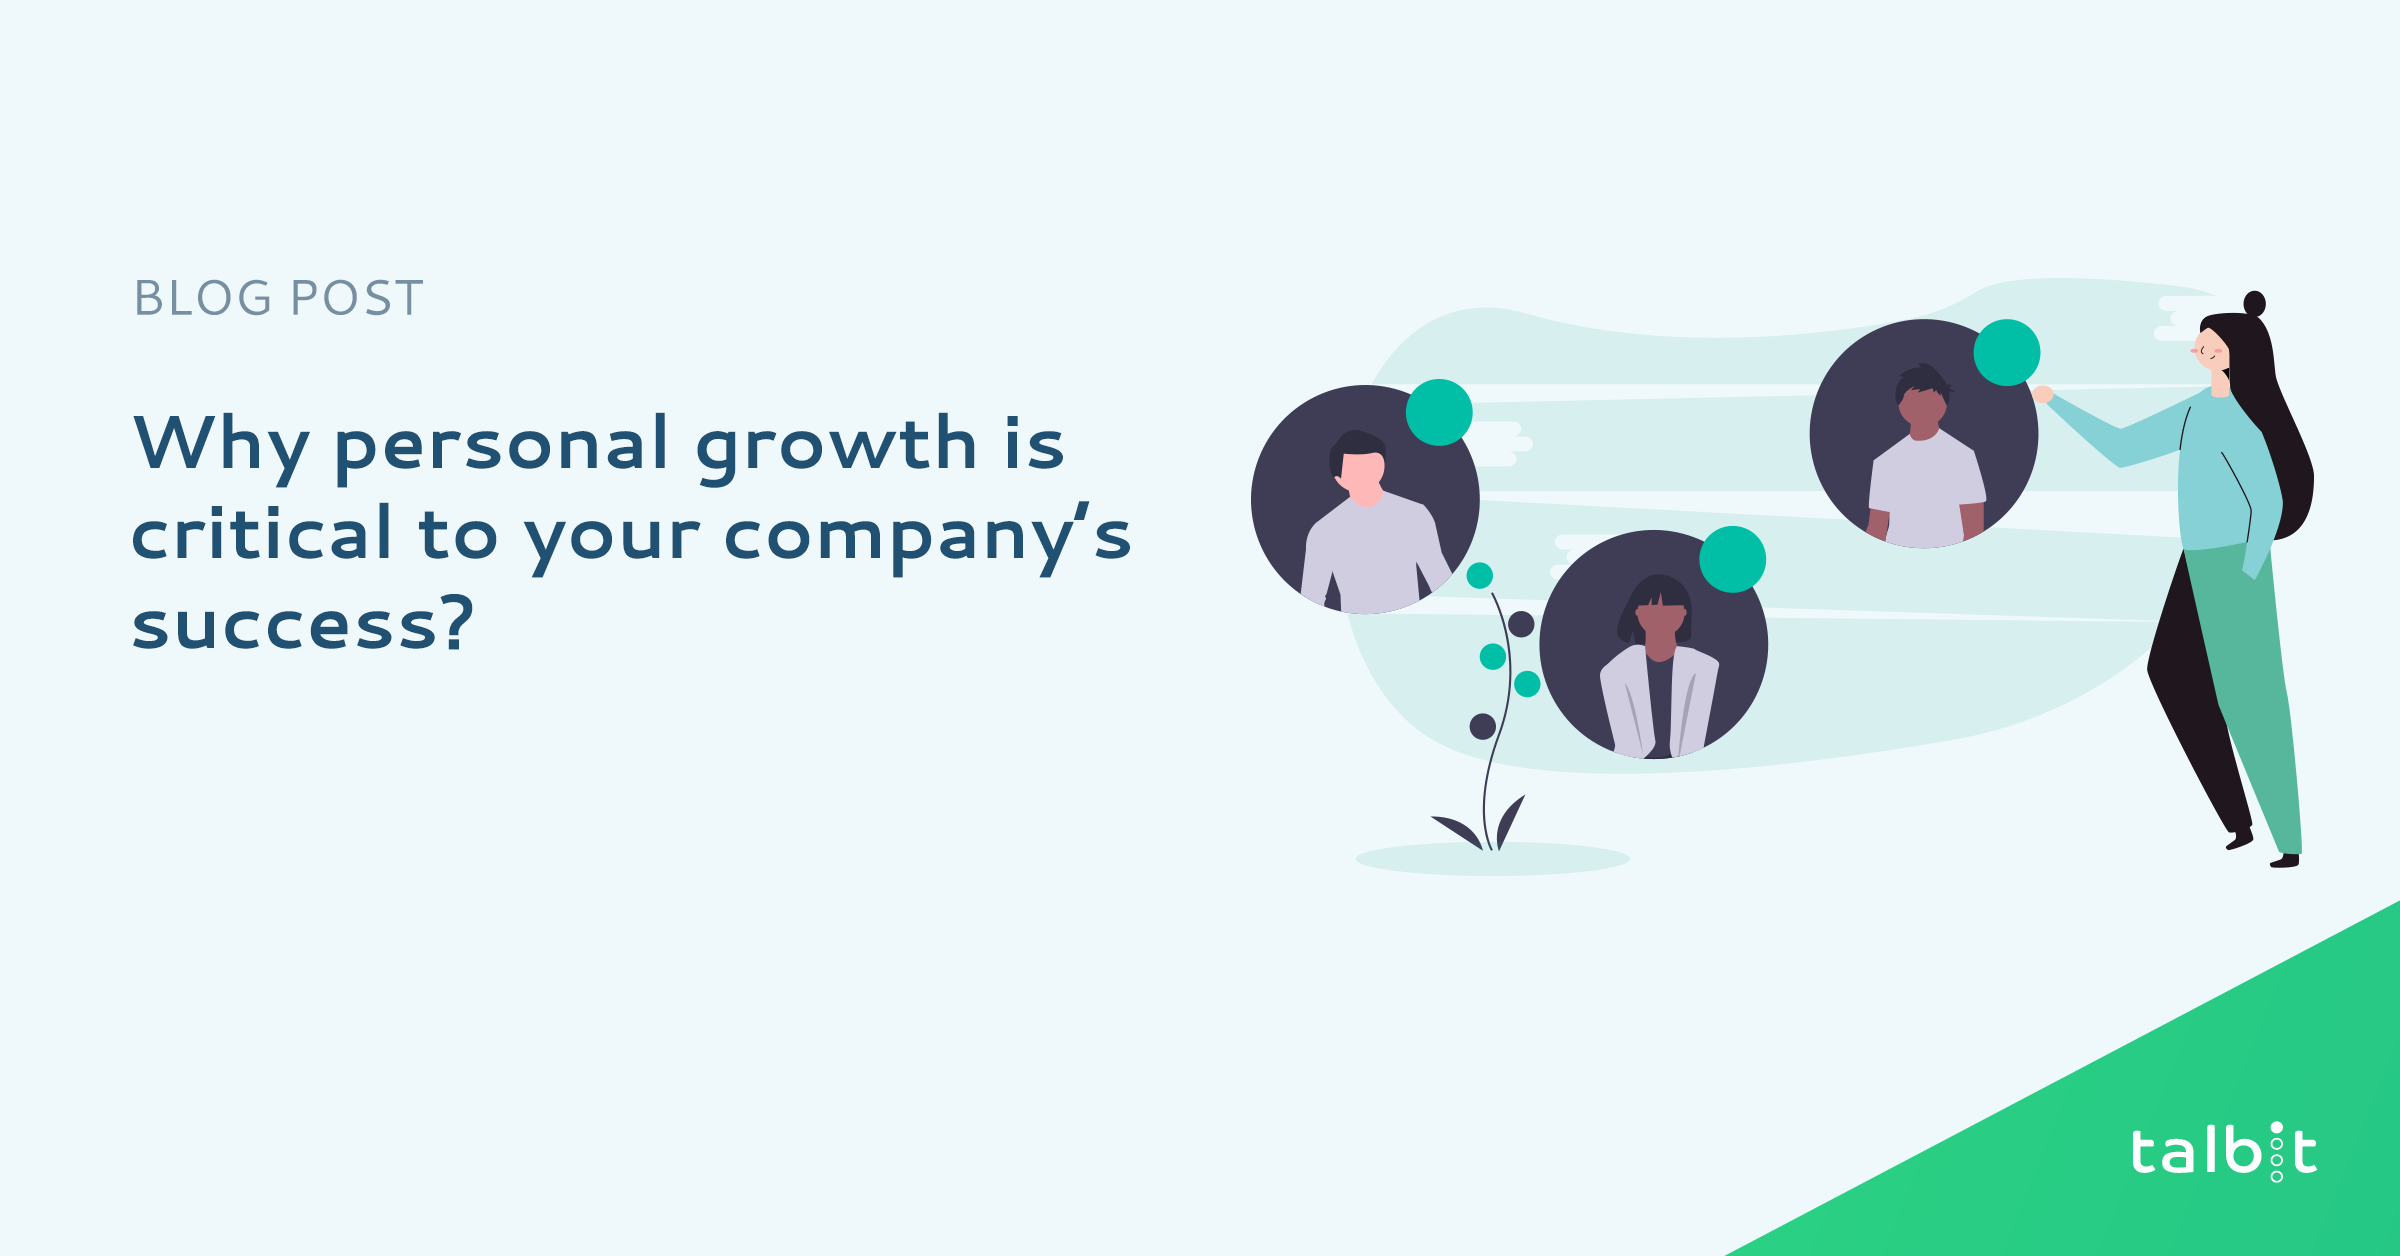 Why personal growth is critical to your company's success?